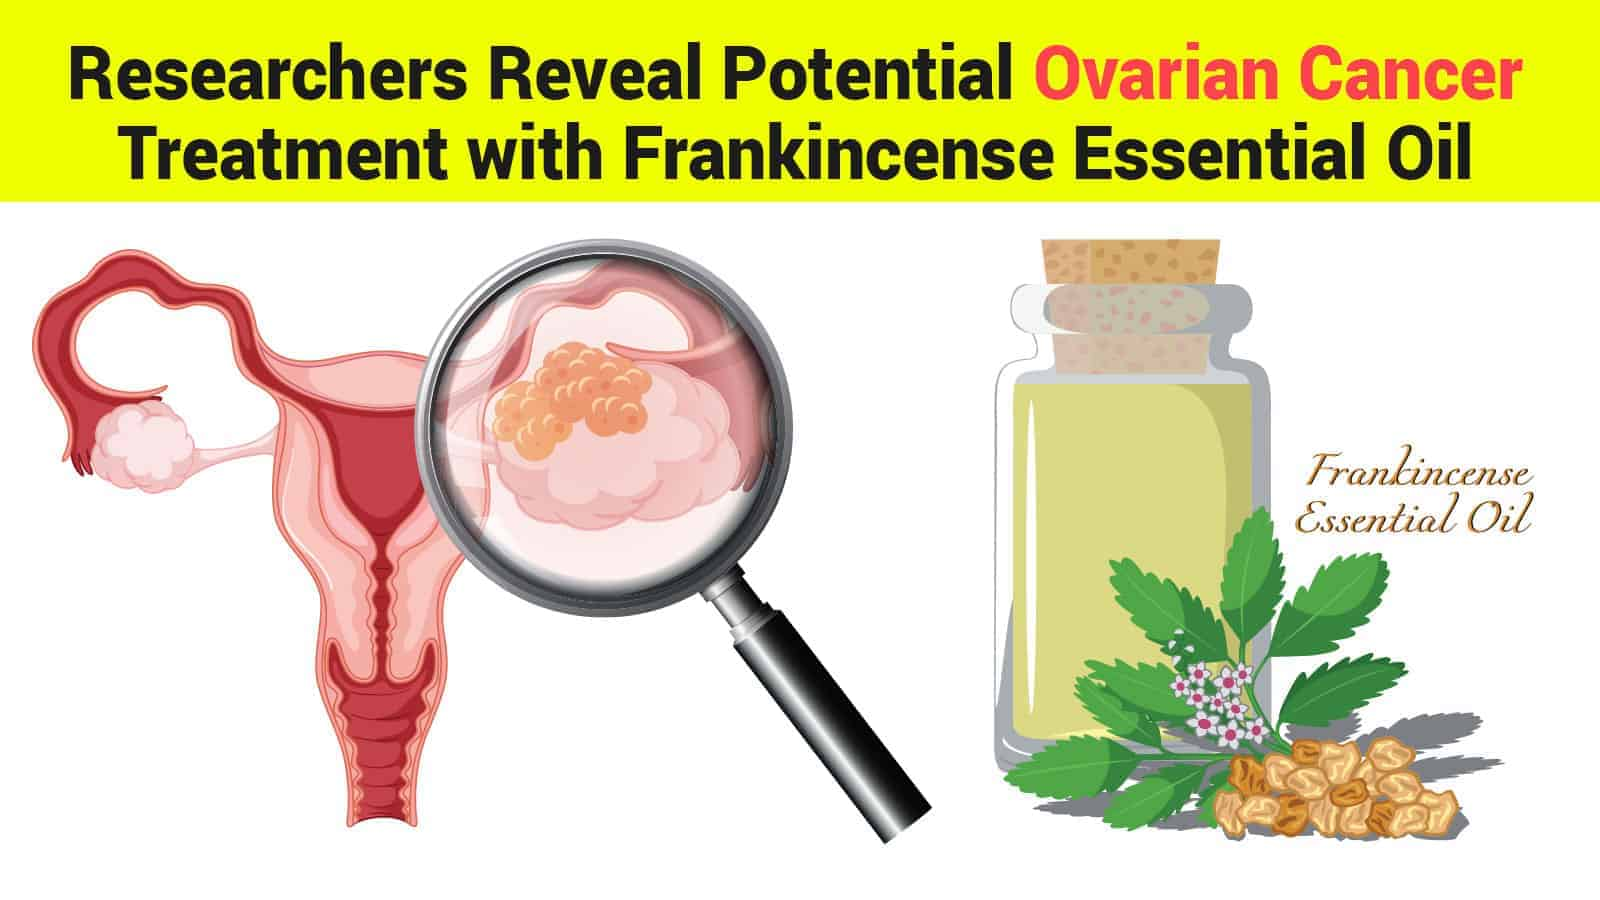 Researchers Reveal Potential Ovarian Cancer Treatment with